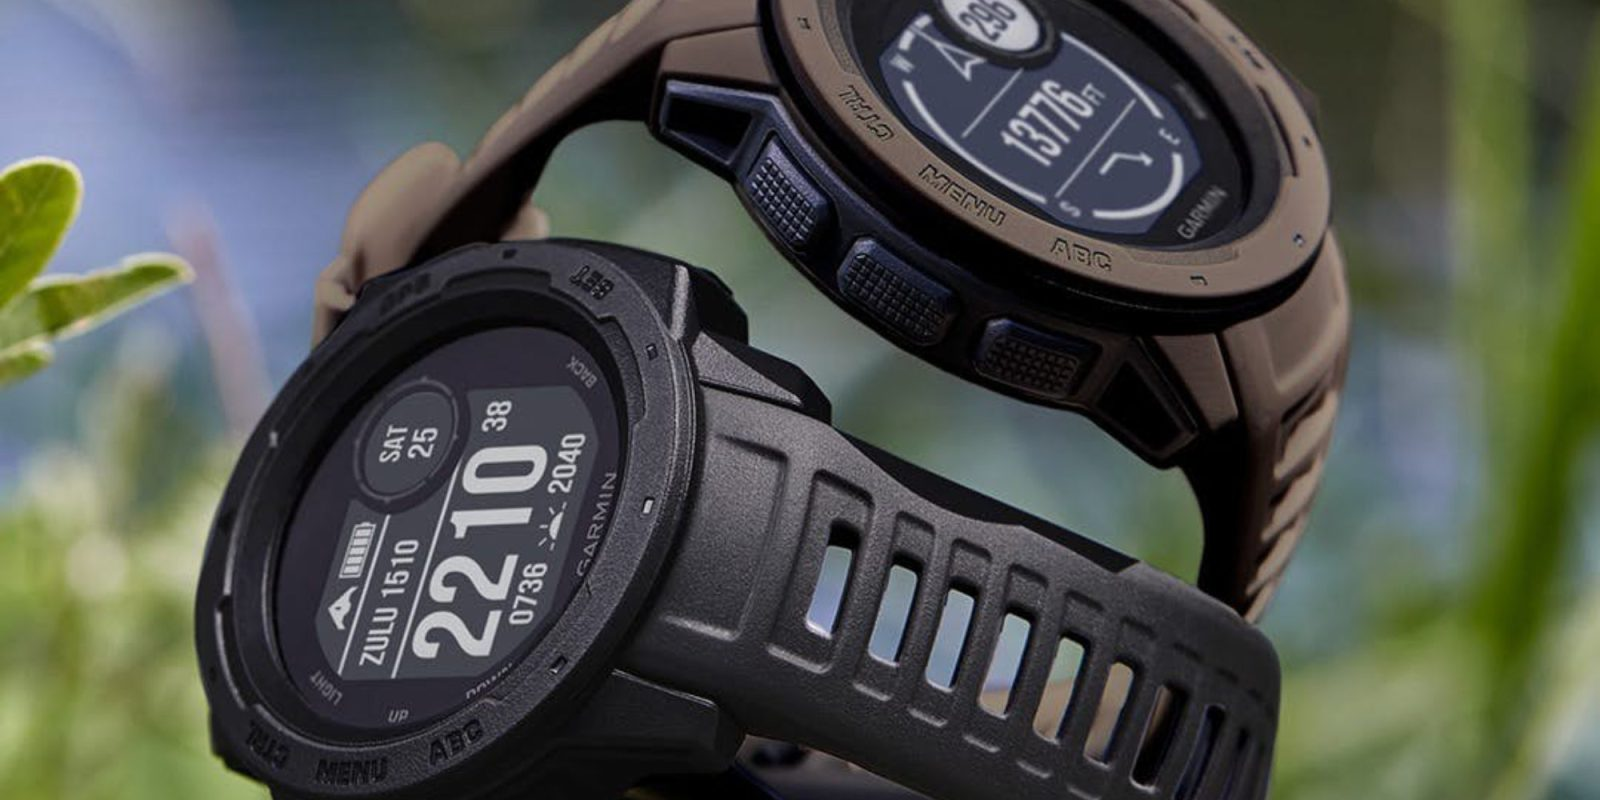 Garmin Instinct Tactical Edition has stealth + night vision